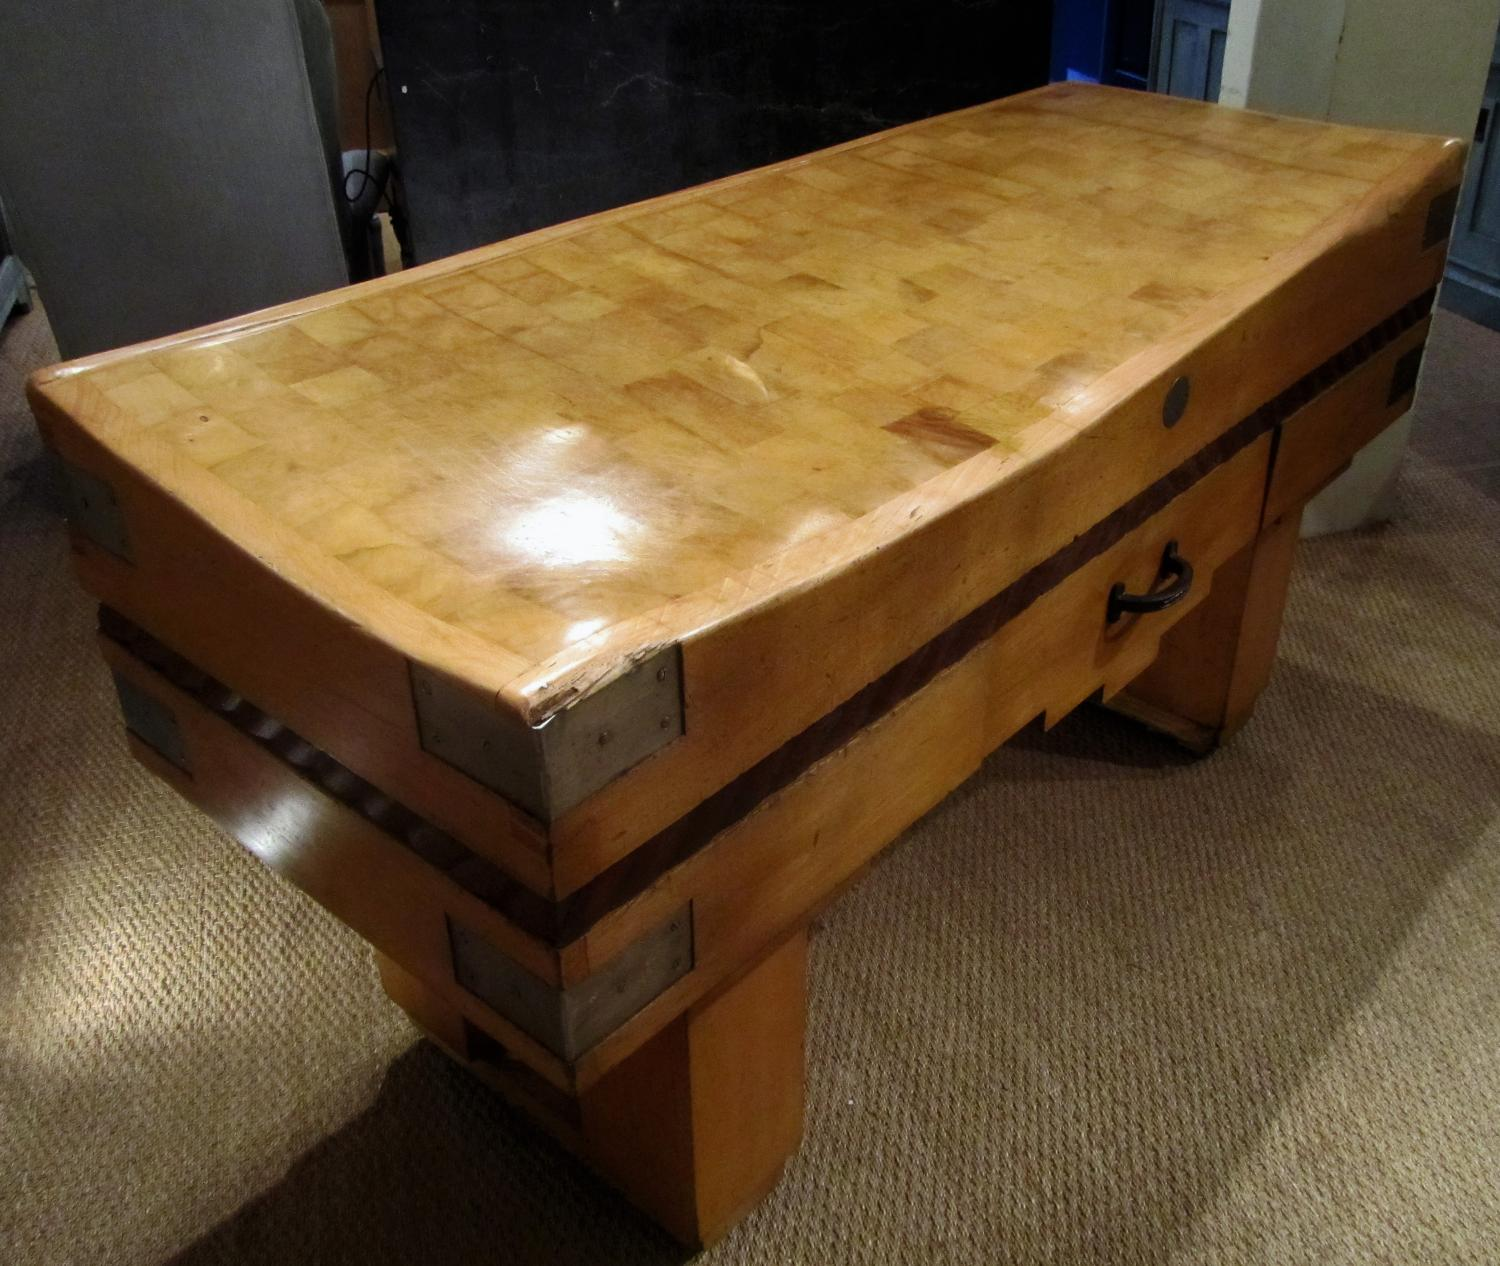 A large butchers block